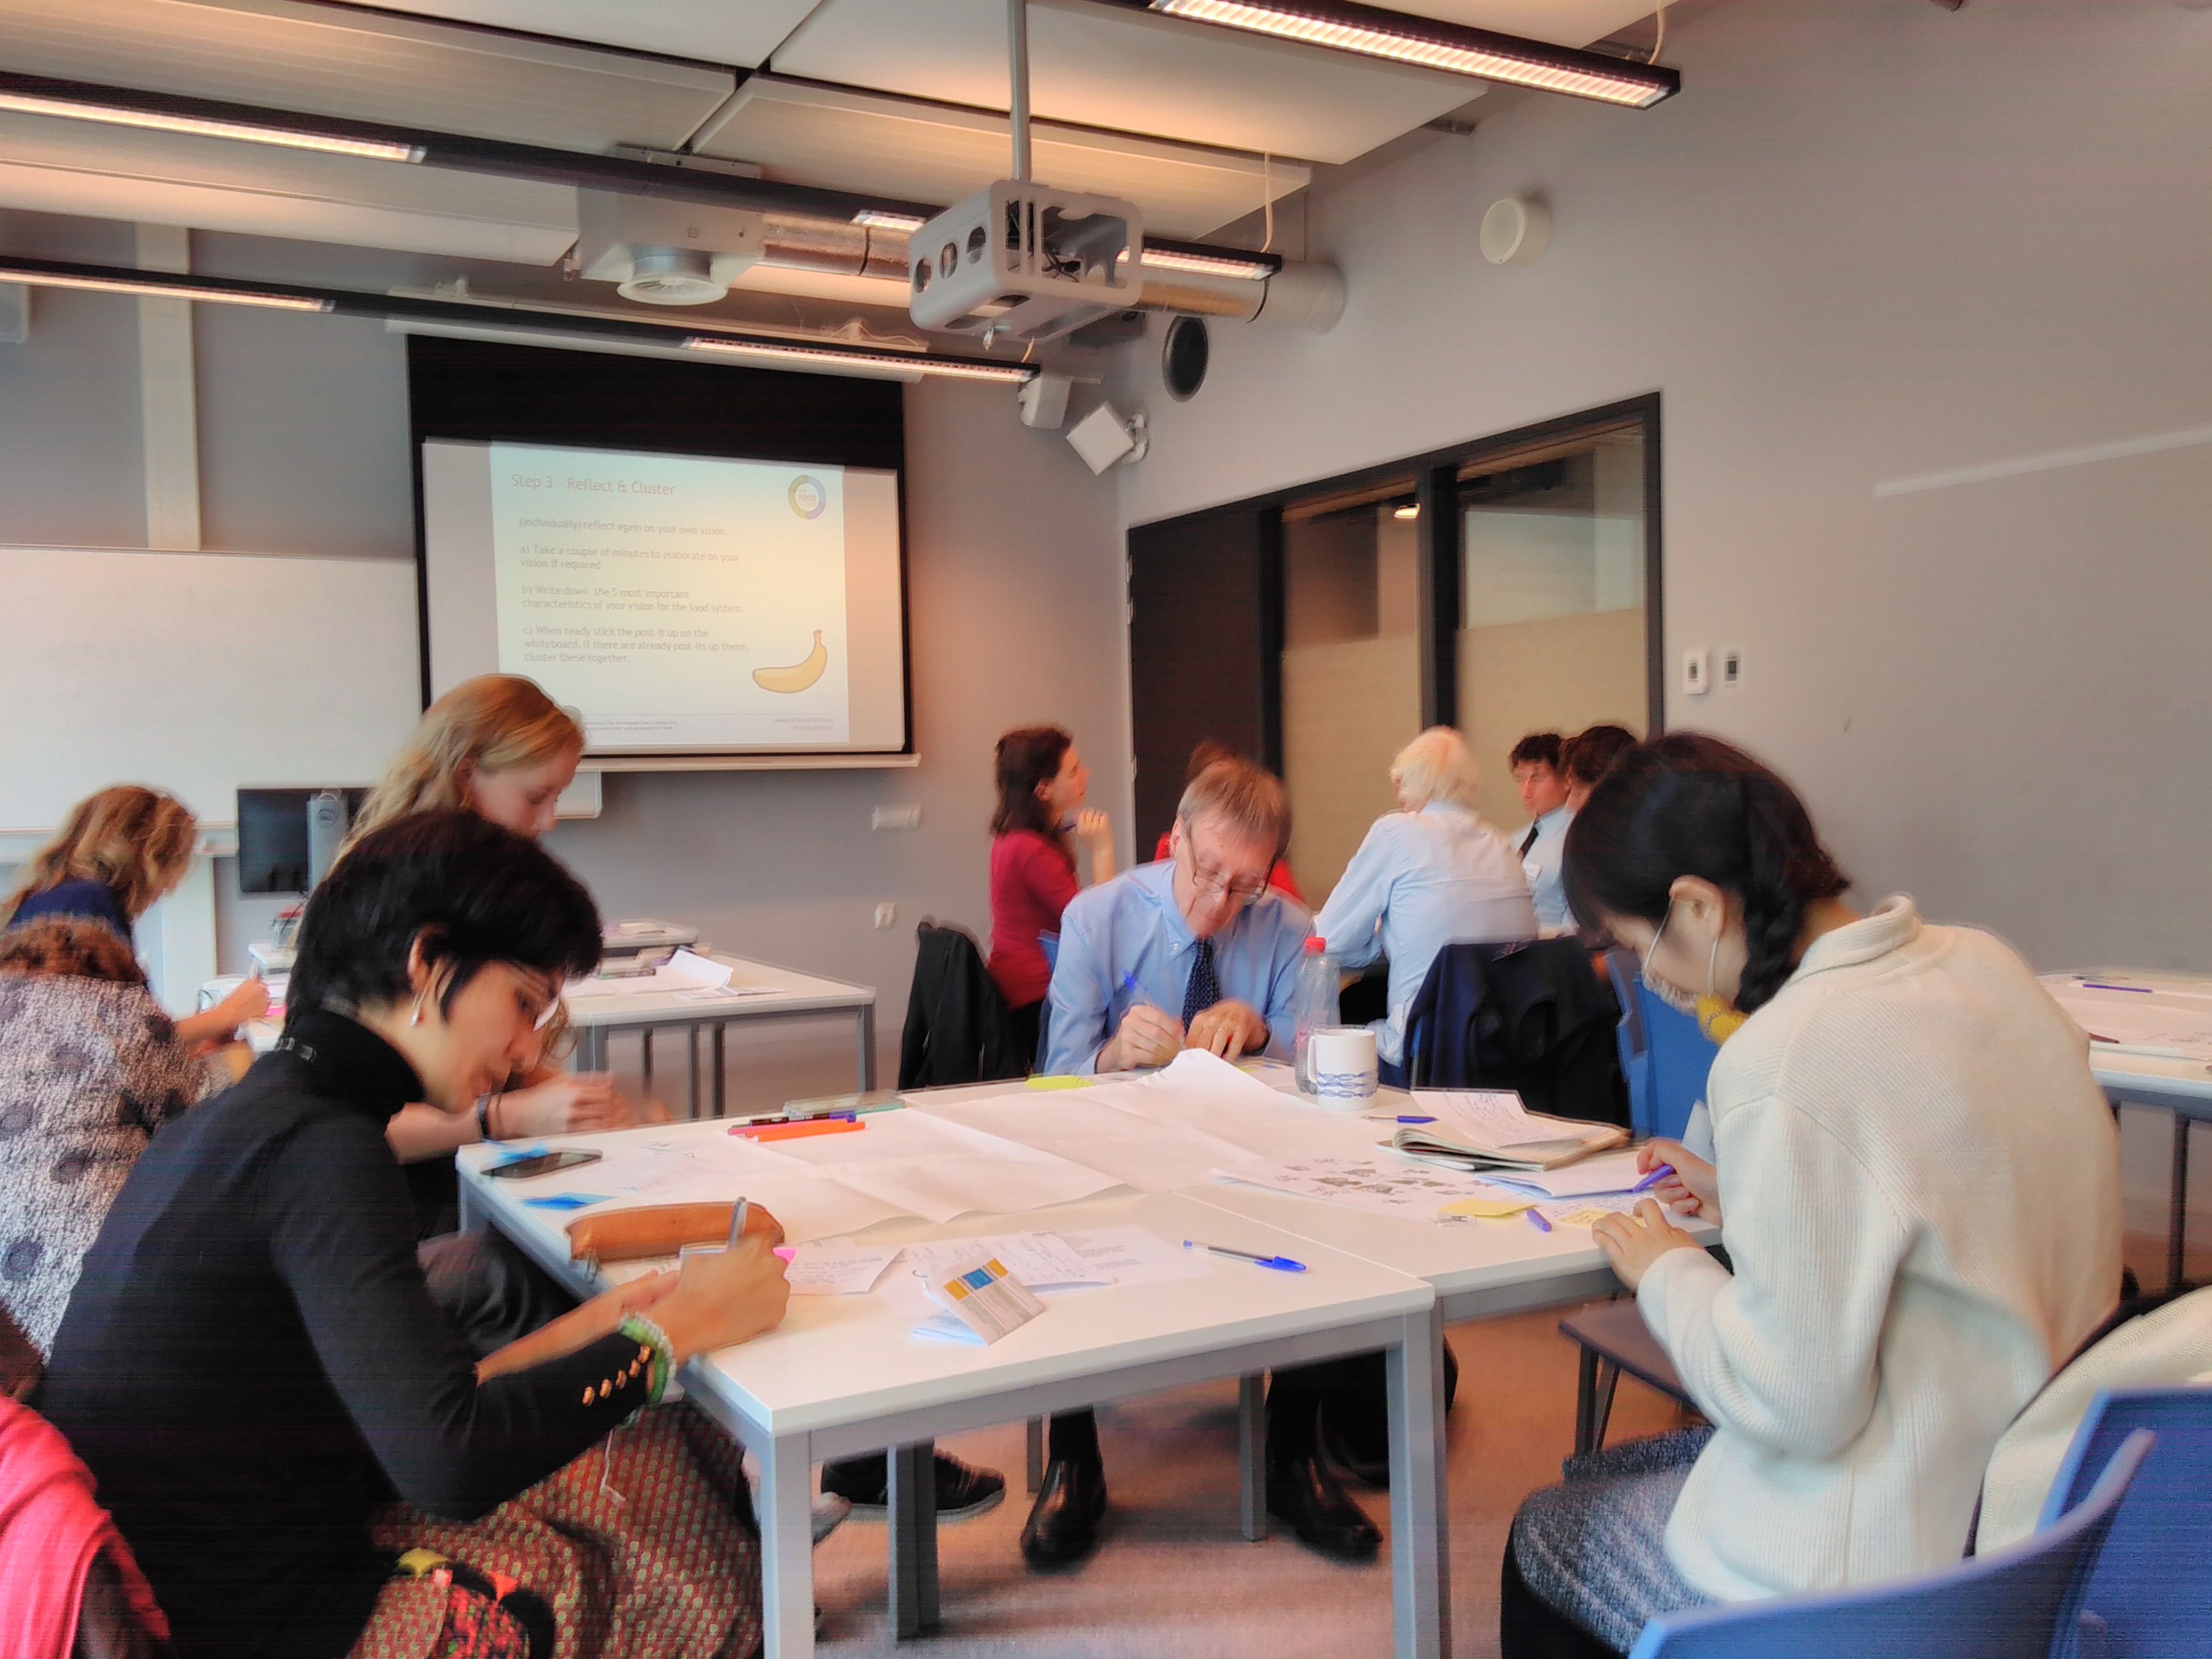 Participants at the City Lab Amsterdam visioning workshop, June 2018